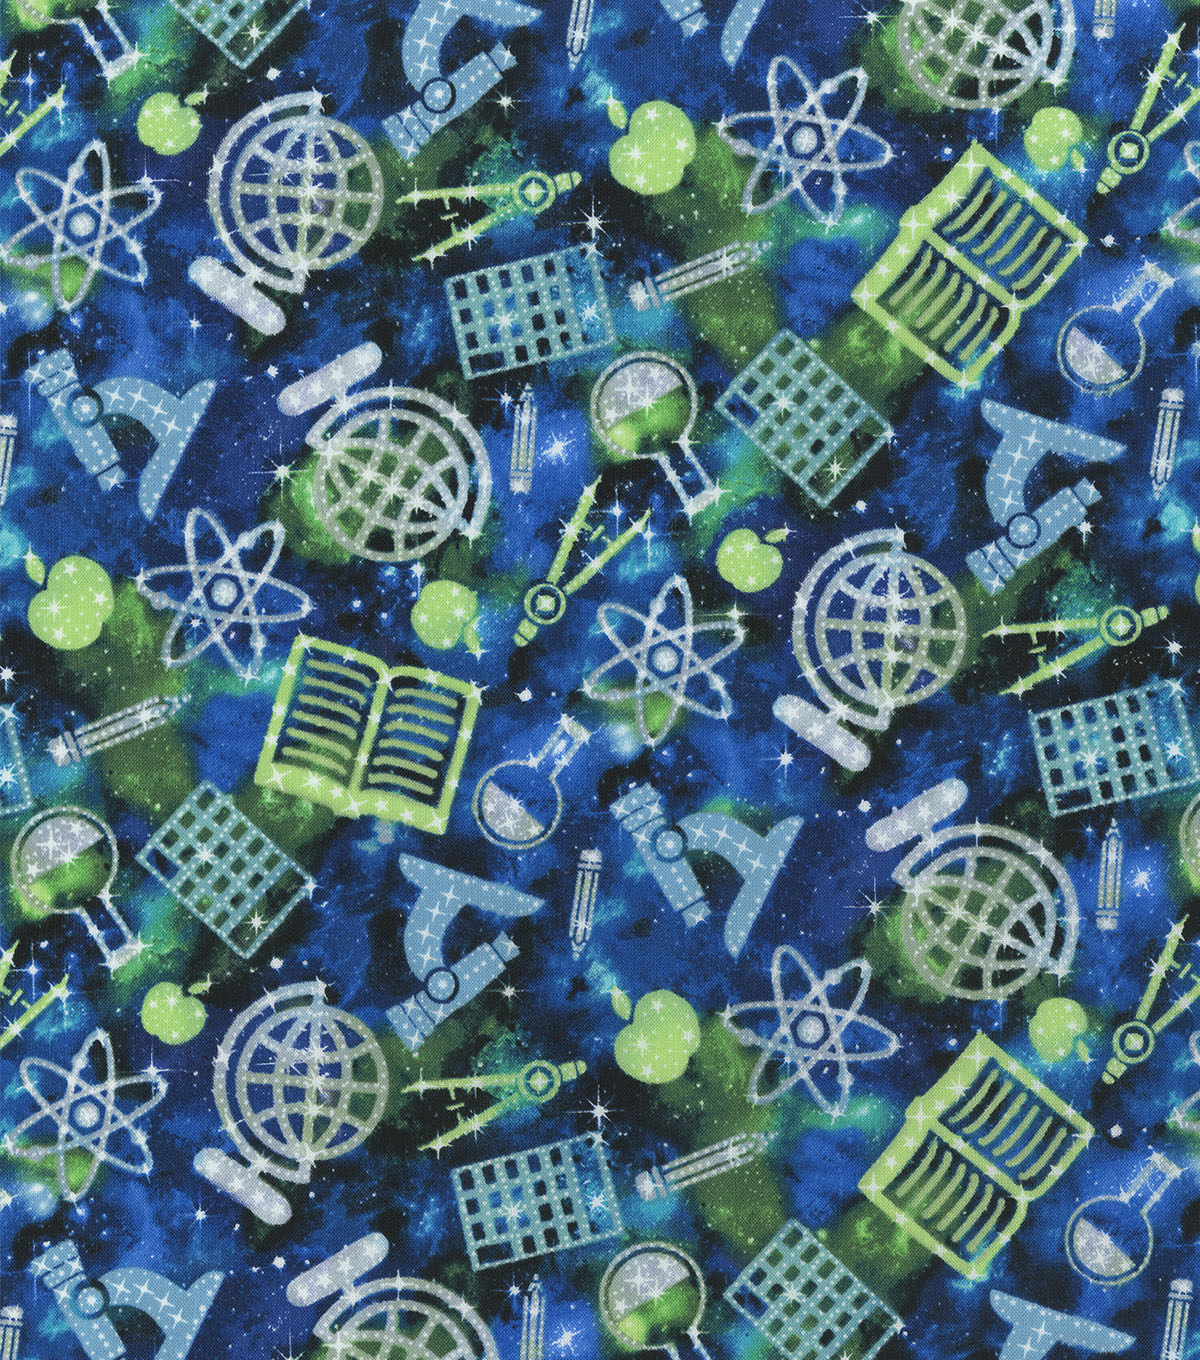 Novelty Cotton Fabric-School Supplies in Space